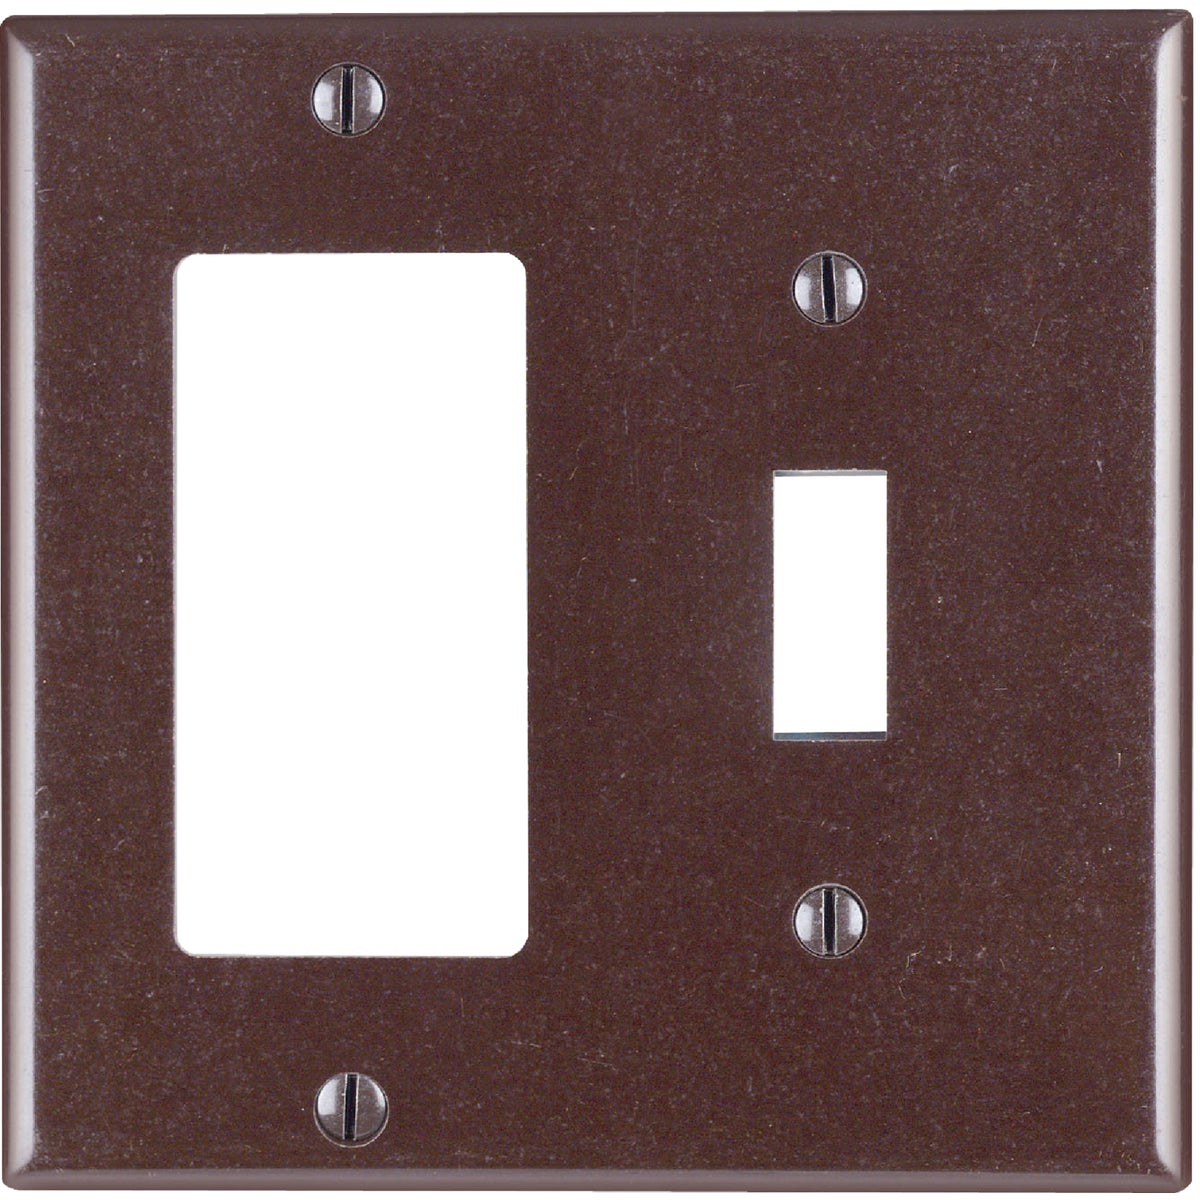 BRN GFI/TOGL WALL PLATE - 80405 by Leviton Mfg Co